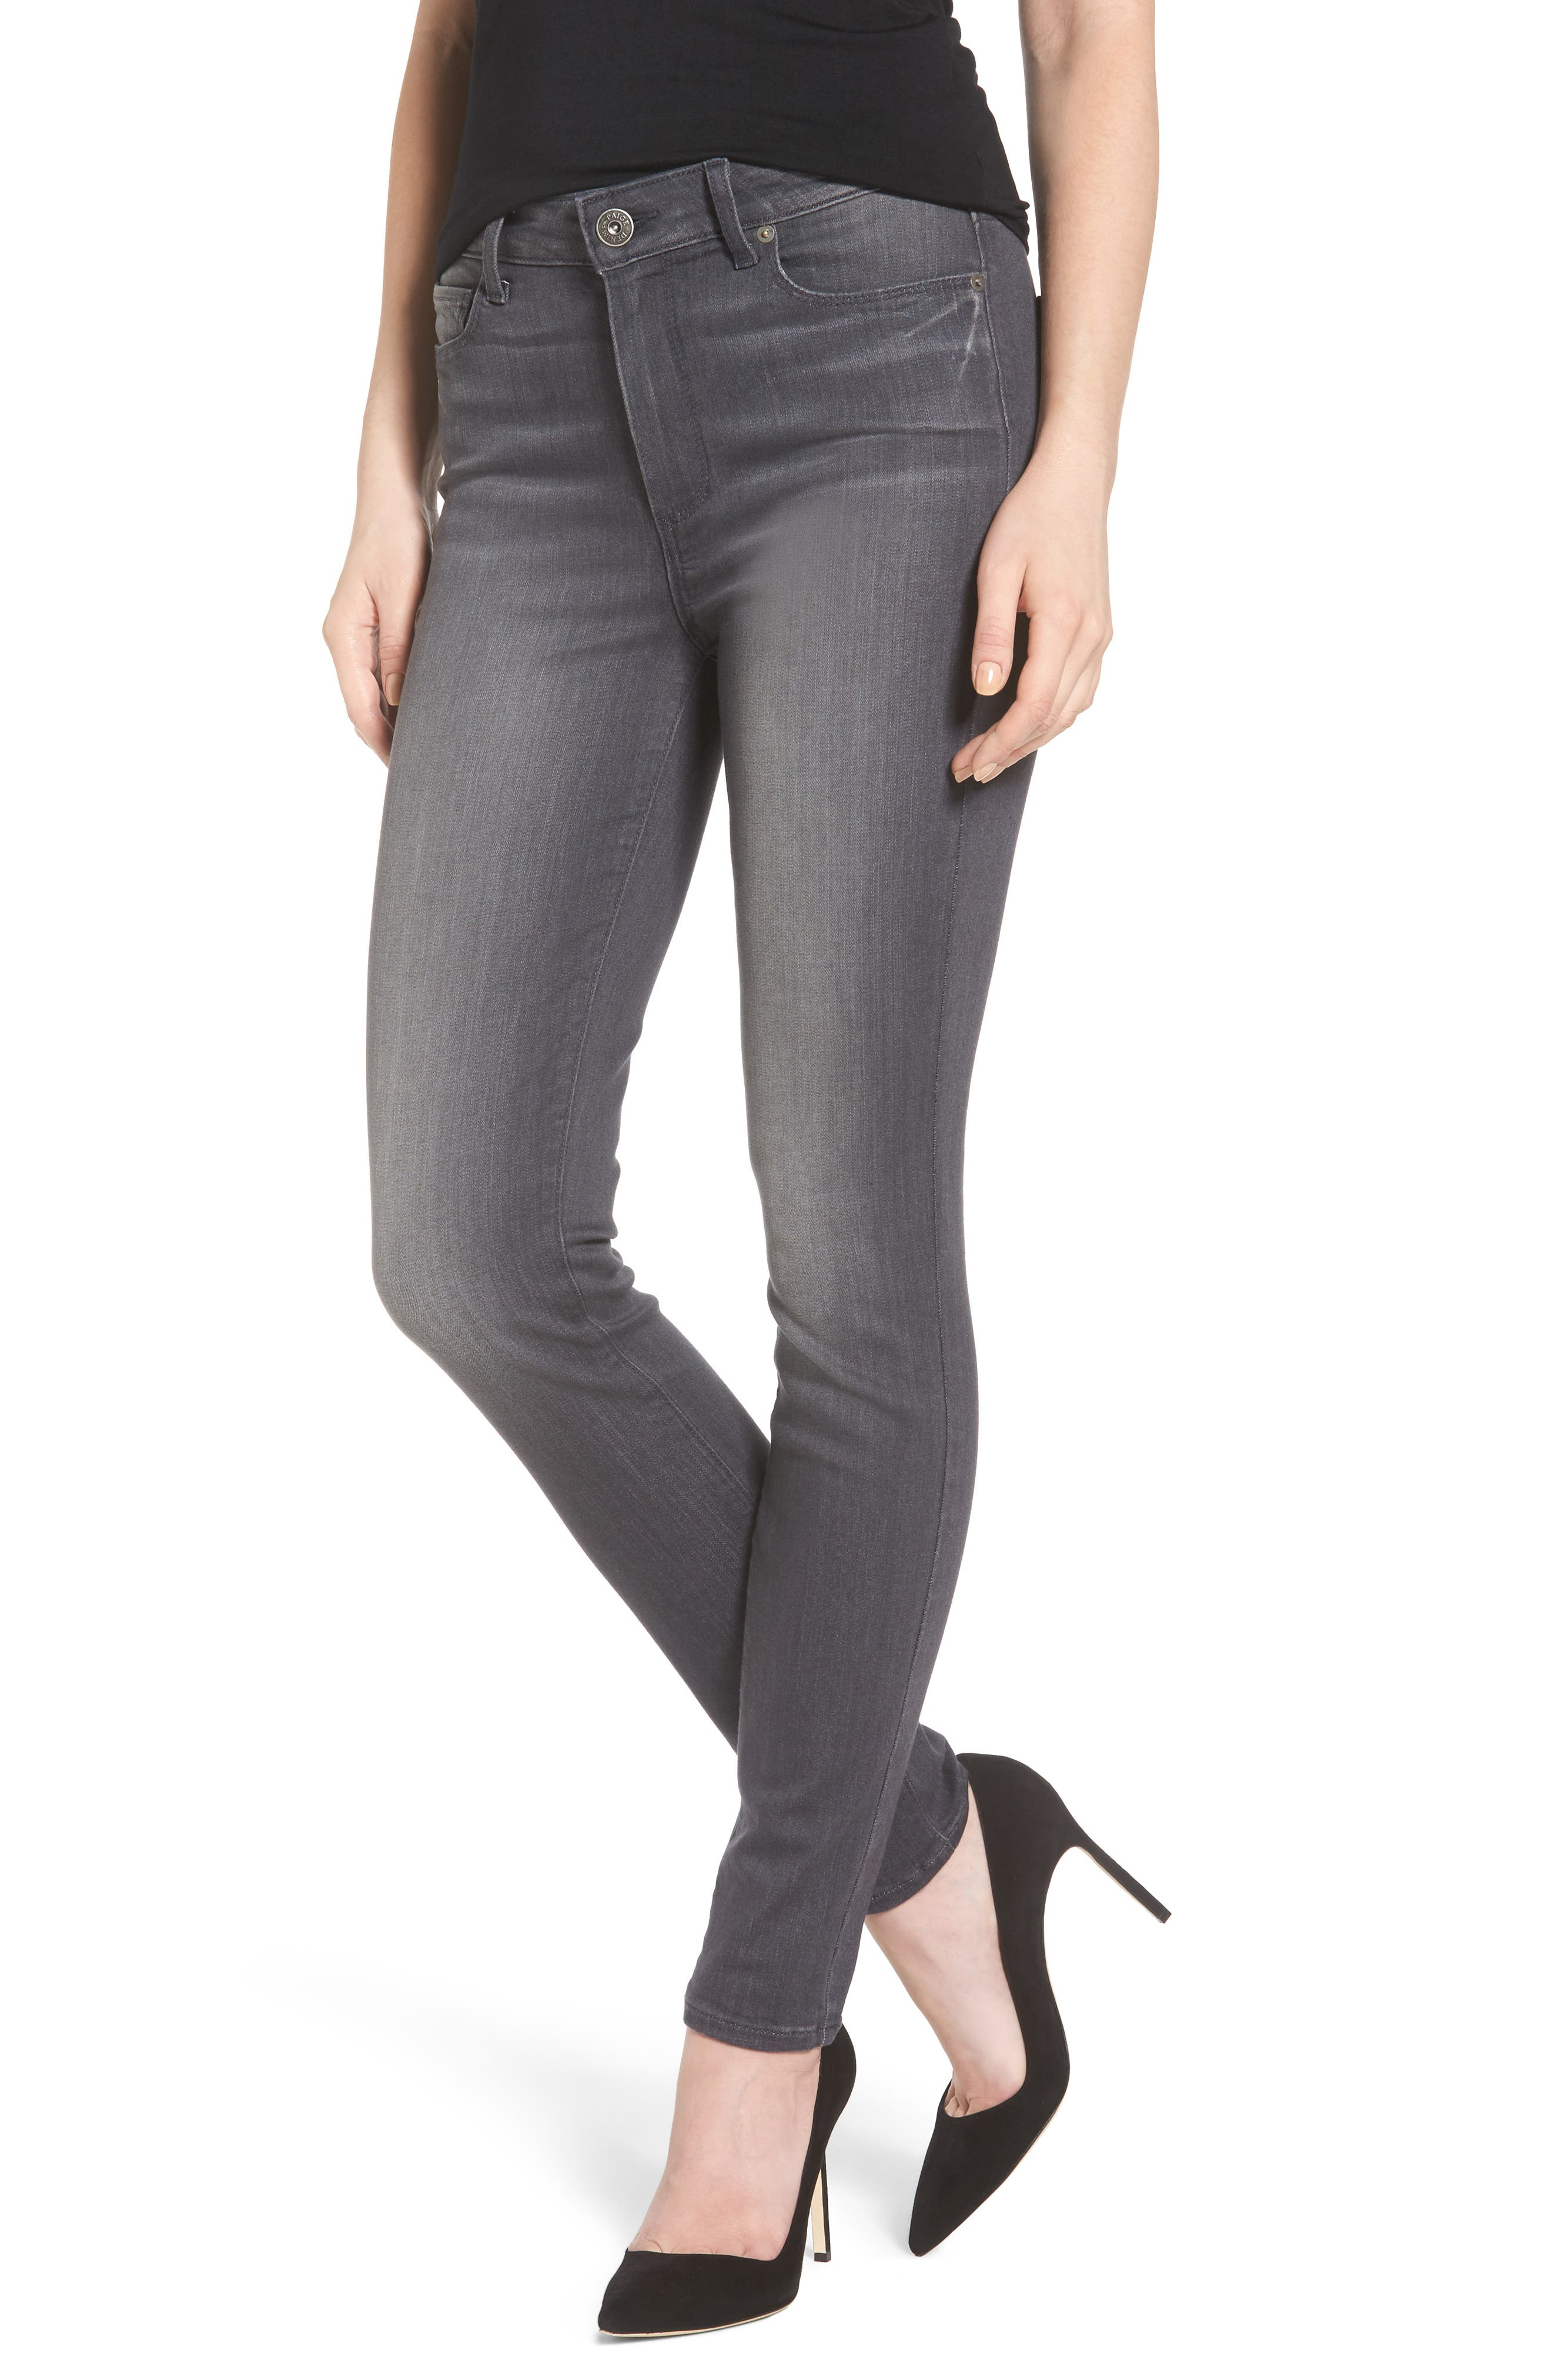 Alternate Image 1 Selected - PAIGE Transcend - Hoxton High Waist Ultra Skinny Jeans (Summit Grey)